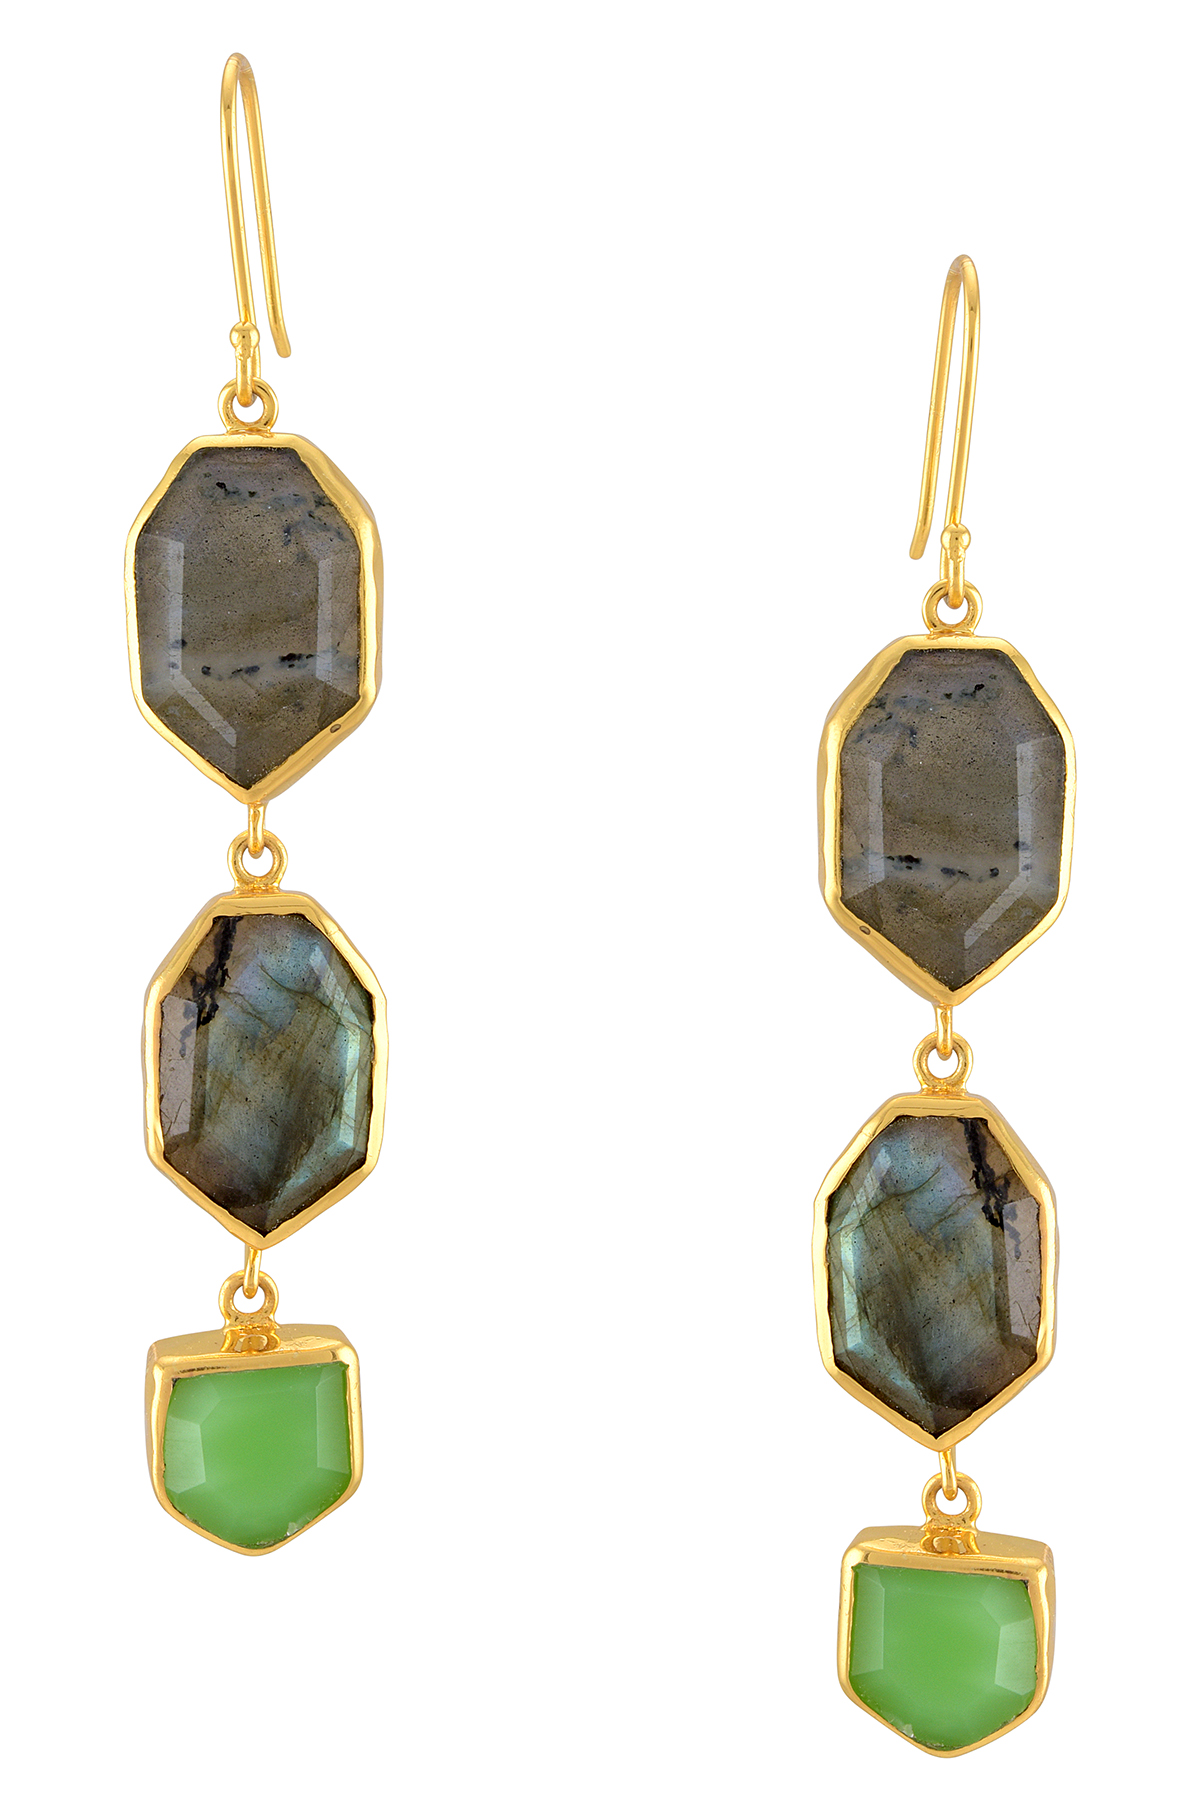 Gold Plated Labradorite Glass Earrings